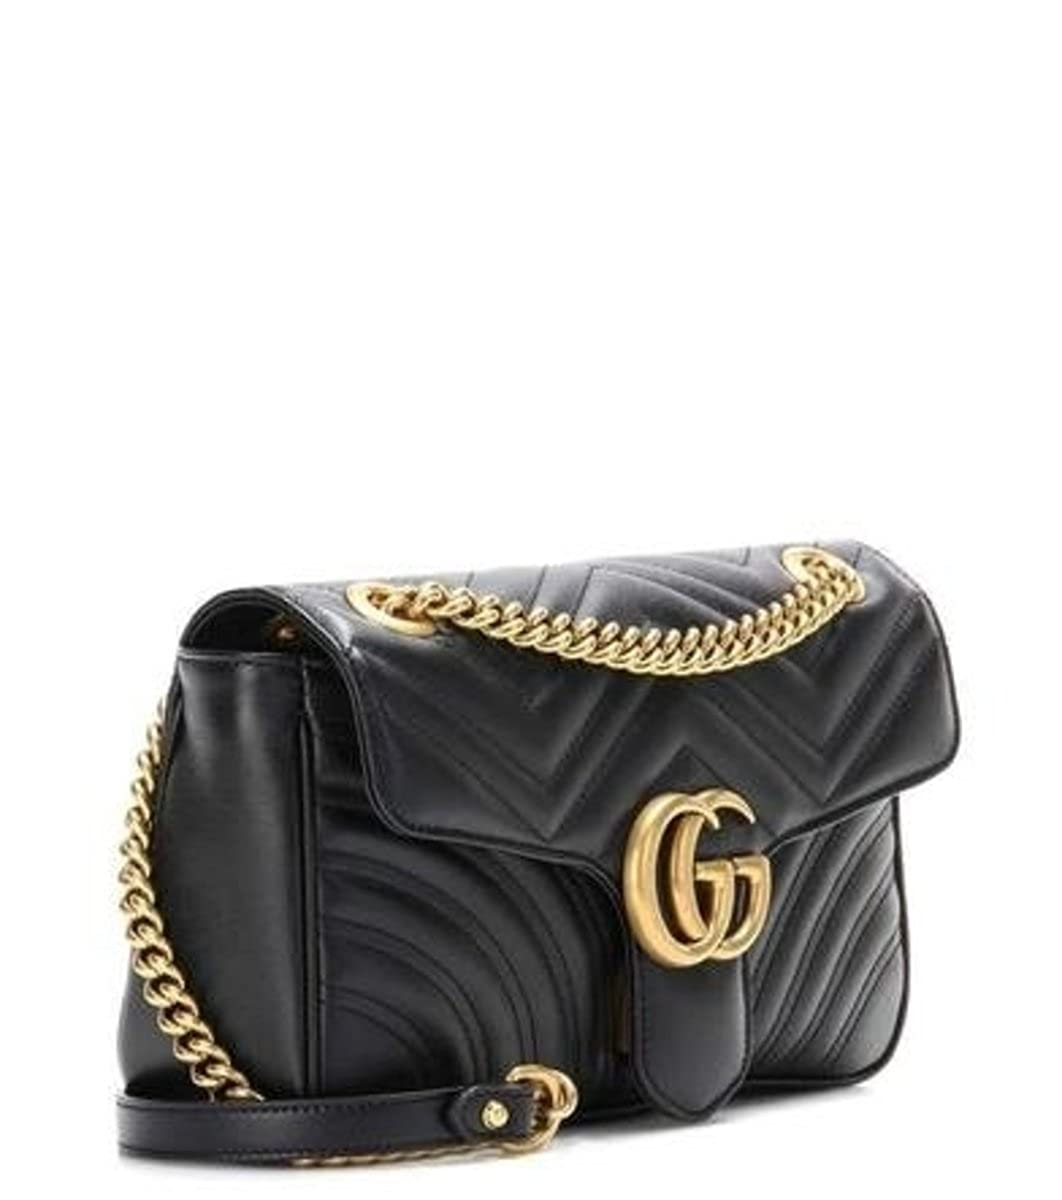 379c94bf5c2 Gucci GG Marmont Medium Matelassé Leather Shoulder Bag  Amazon.co.uk  Shoes    Bags